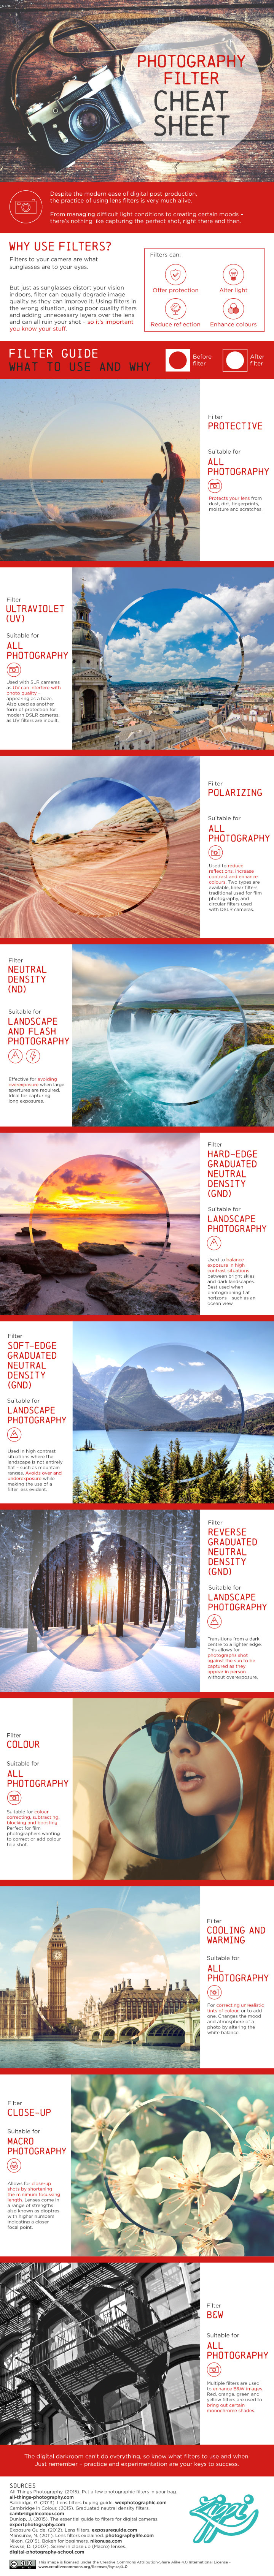 Photographer's Cheat Sheet For Using Filters - Icon Photography School